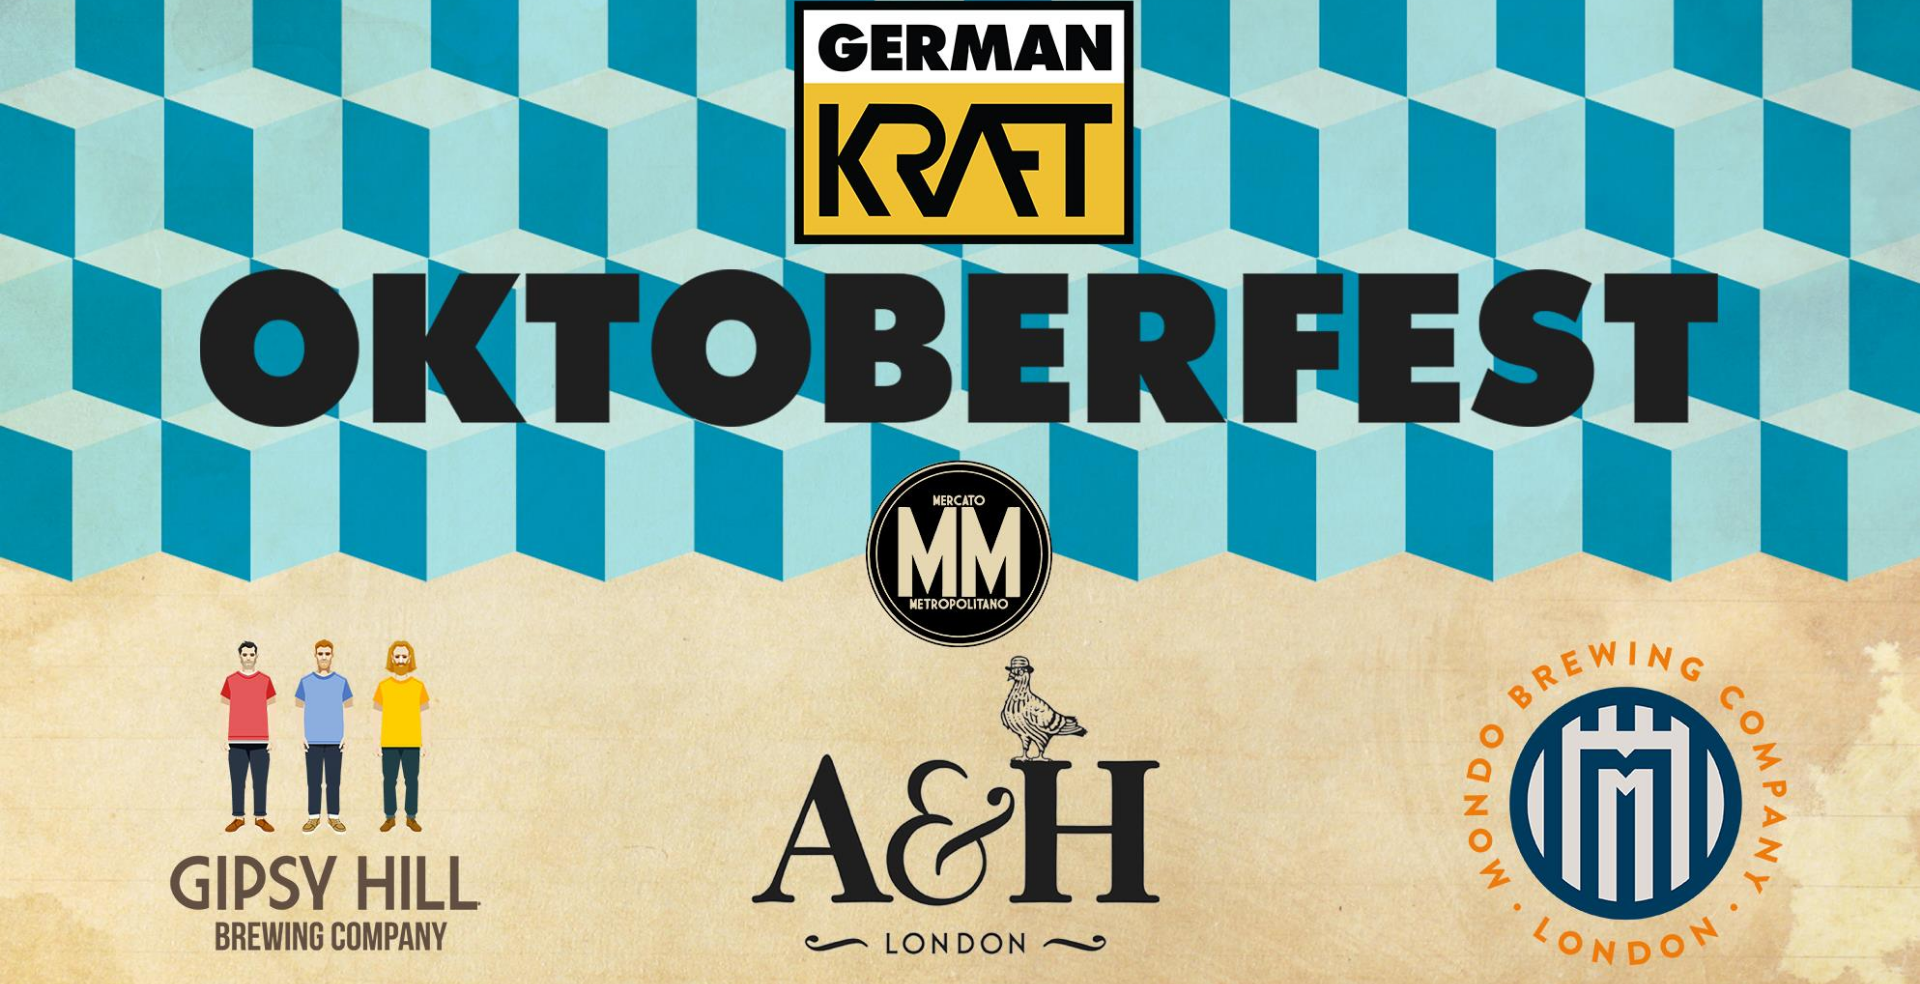 German Kraft & Friends - Oktoberfest